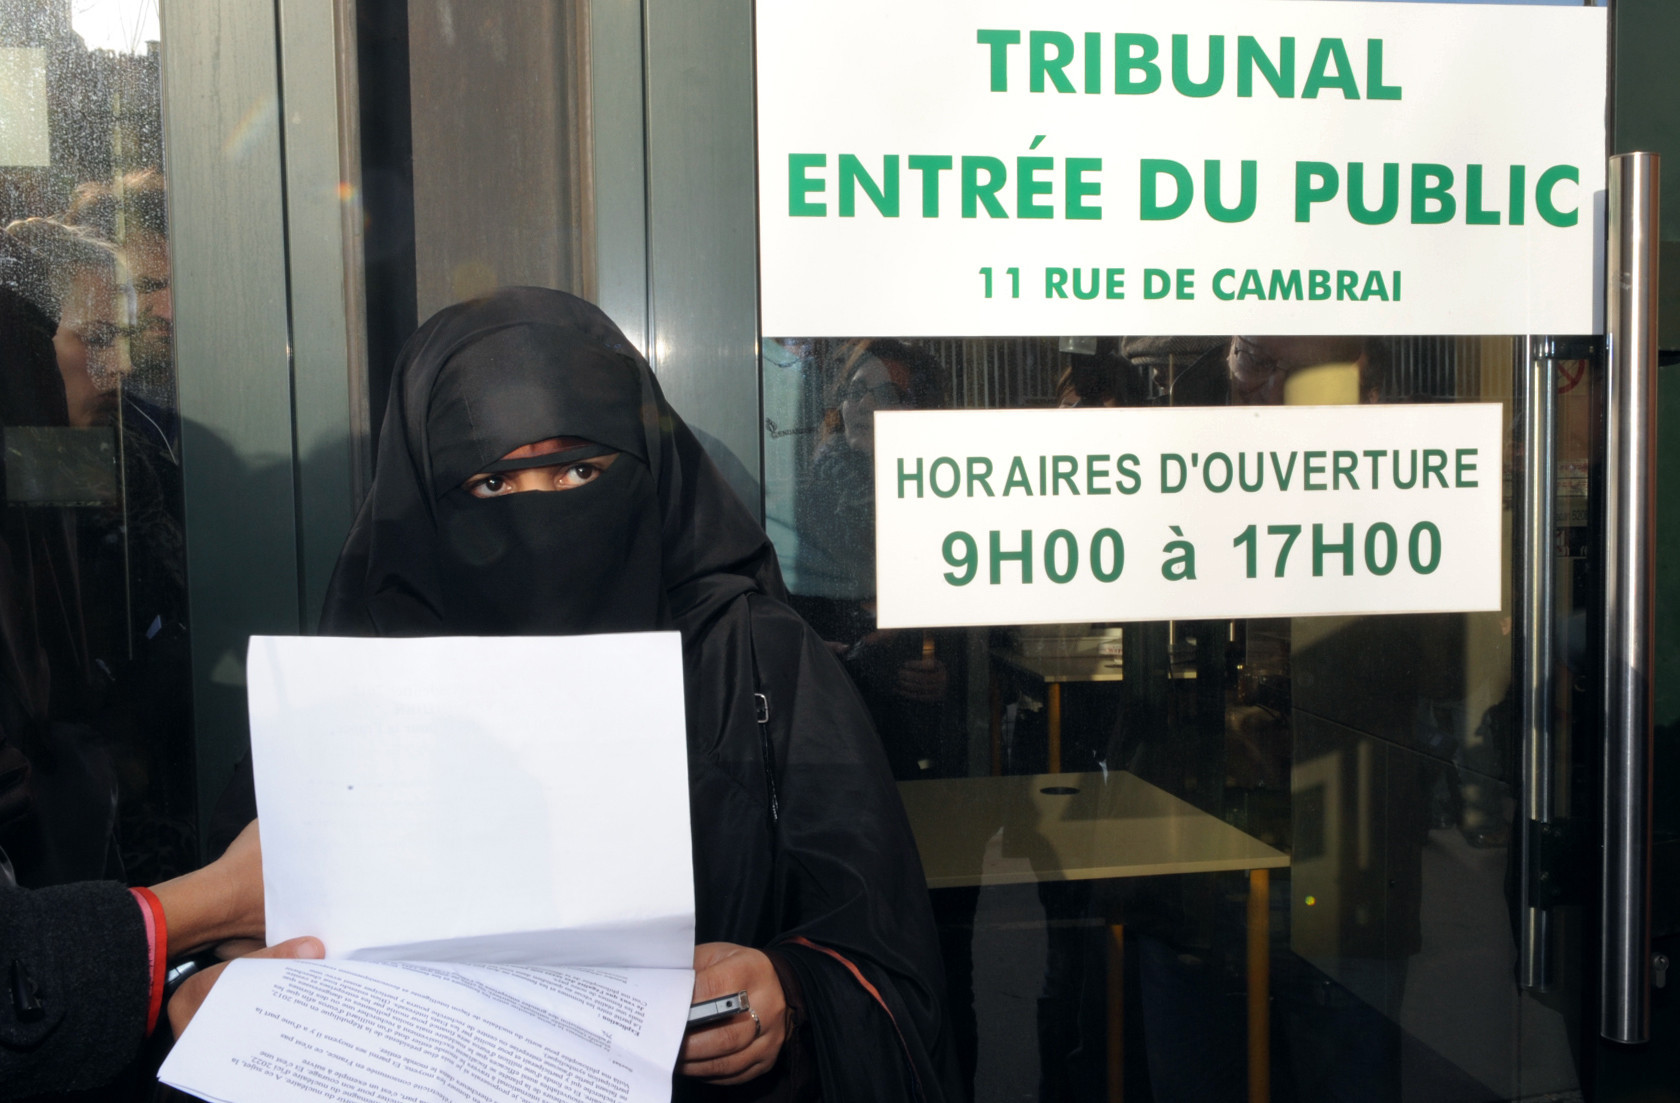 In 2010 France controversially banned the niqab in public ©Getty Images